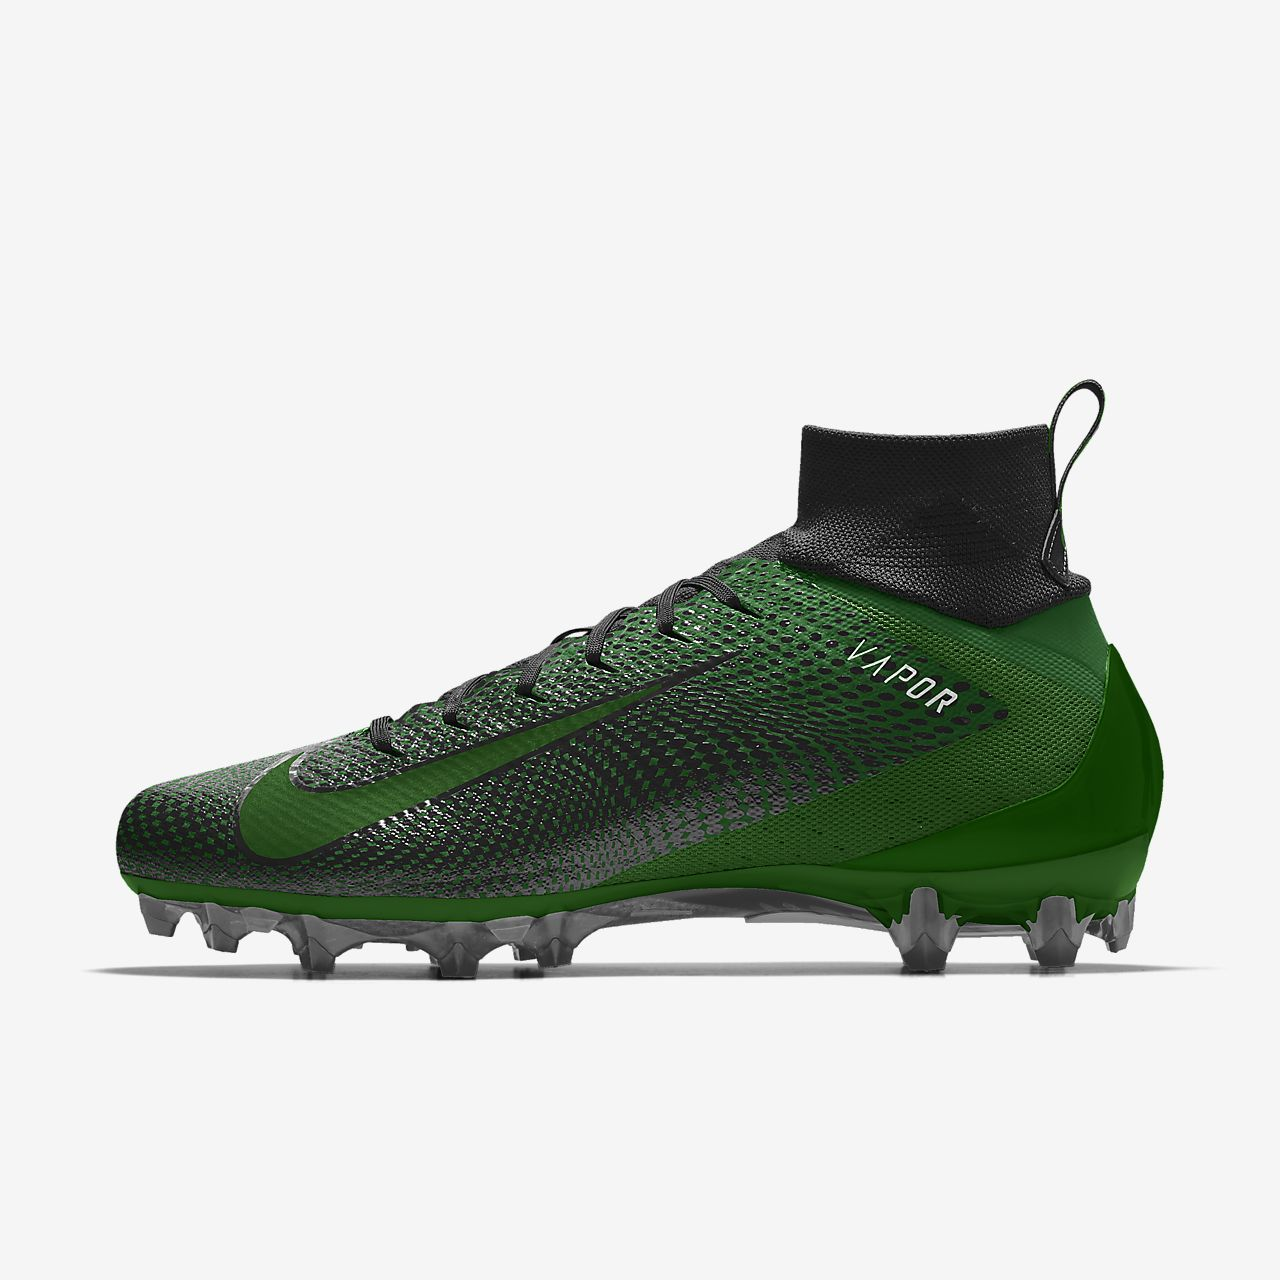 Nike Vapor Untouchable Pro 3 By You Custom Men's Football Cleat